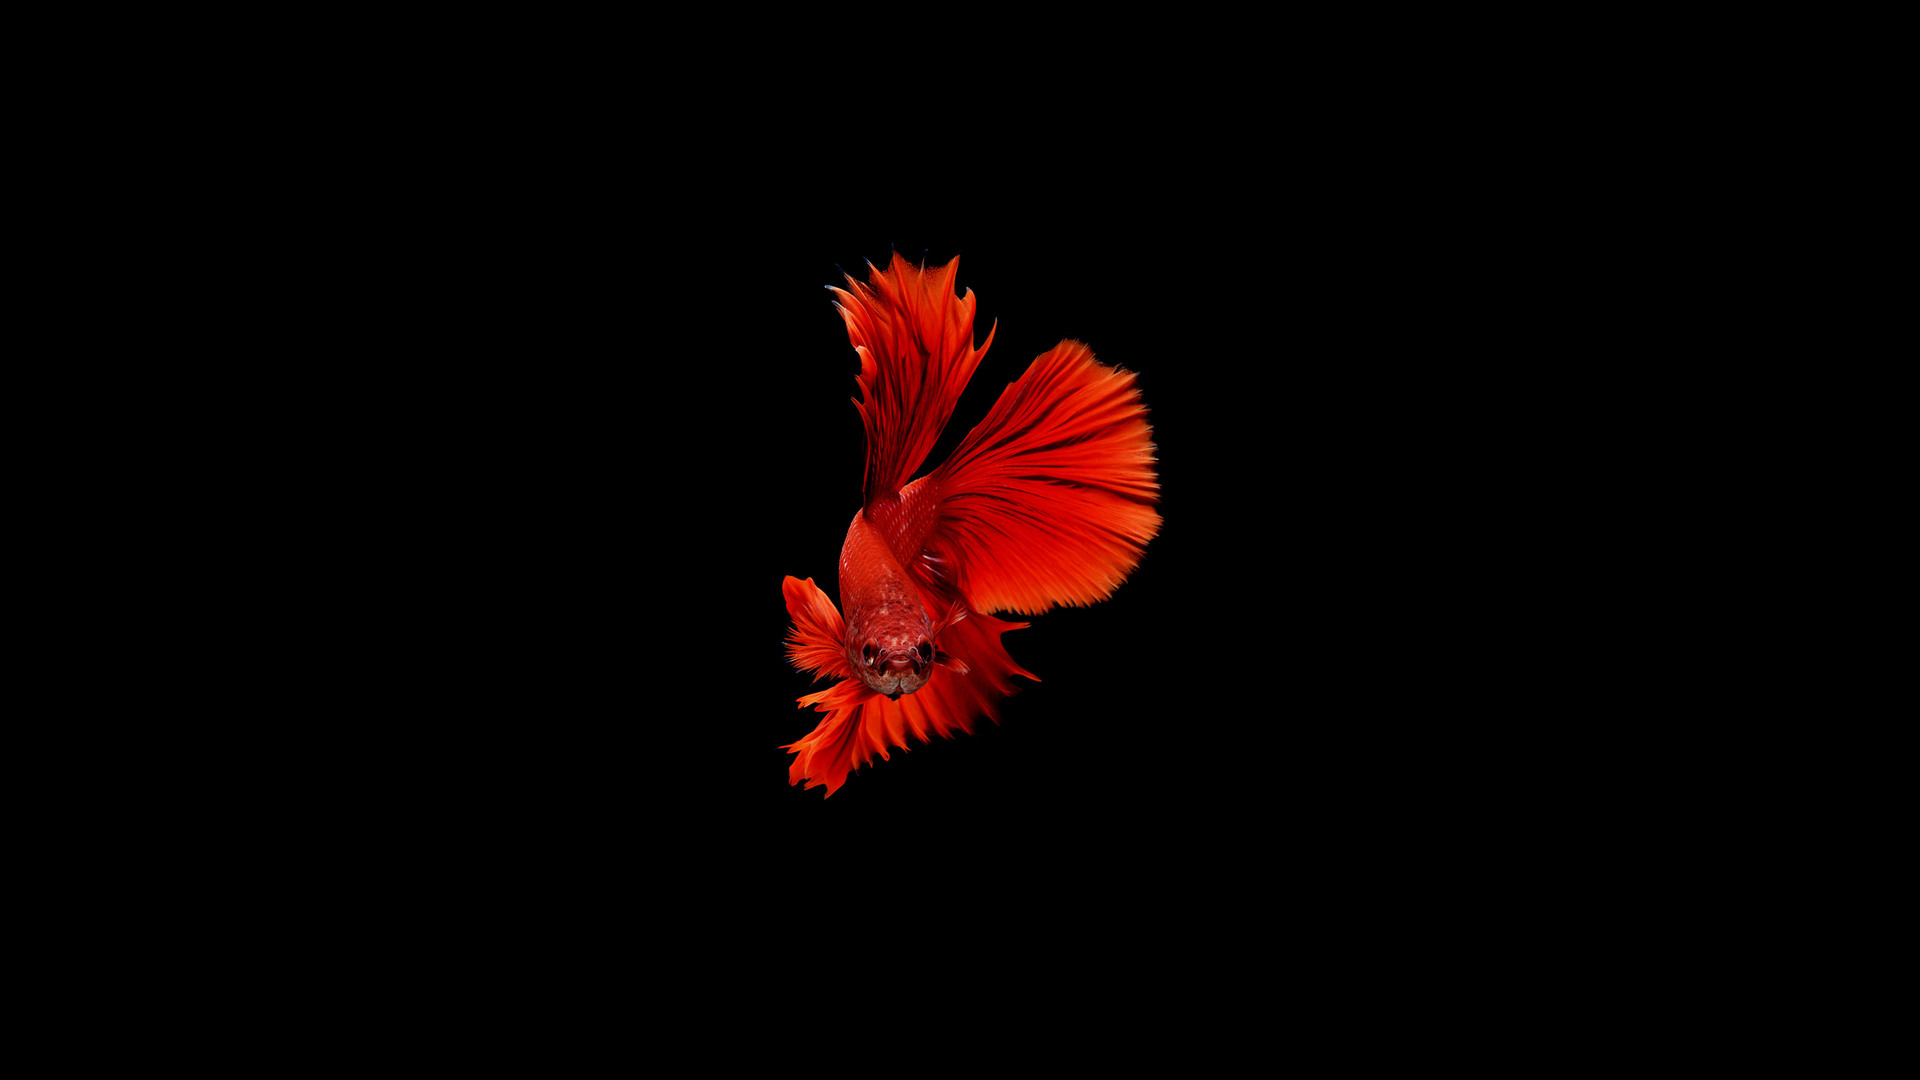 1920x1080 Betta Fish Laptop Full Hd 1080p Hd 4k Wallpapers Images